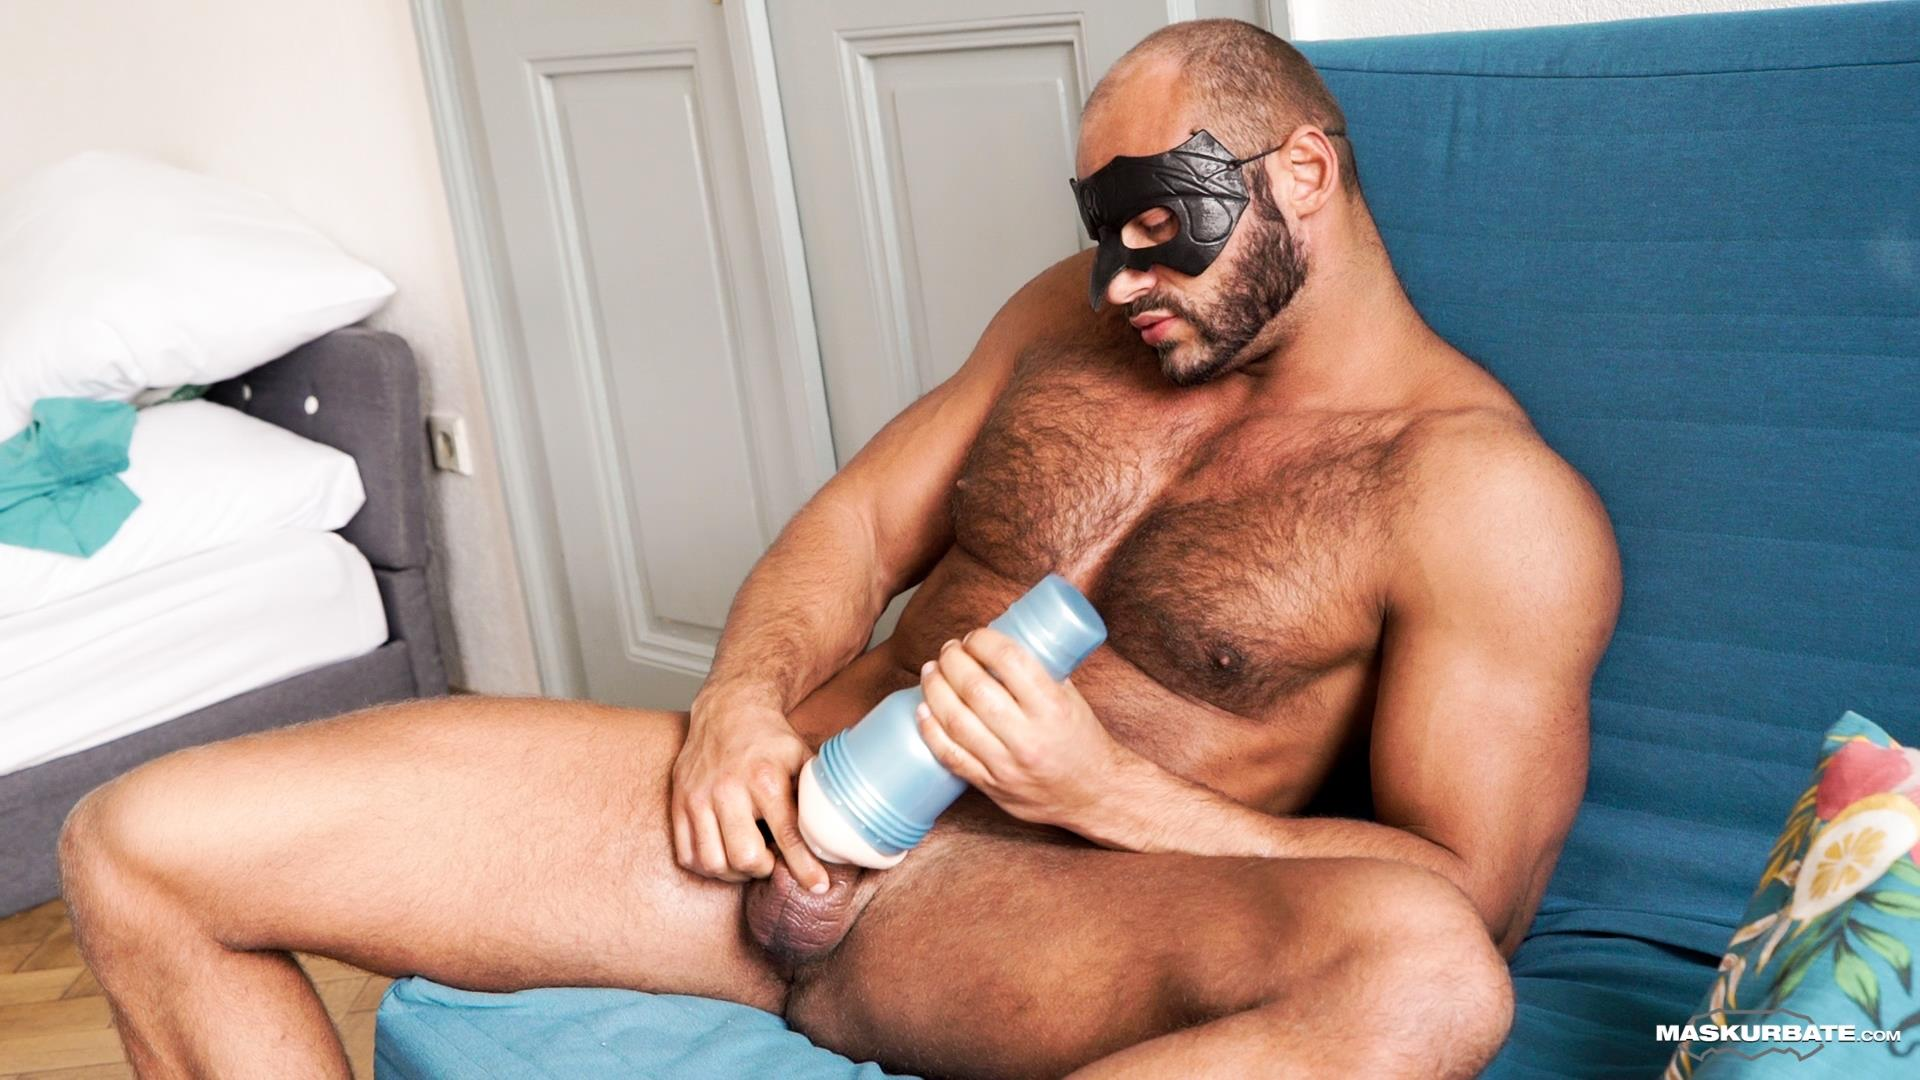 Maskurbate-Zack-Hood-and-Thomas-Friedl-Hairy-Muscle-Hunk-Jerking-Off-12 Hairy Muscle Hunk Uses A Fleshlight On His Big Uncut Cock